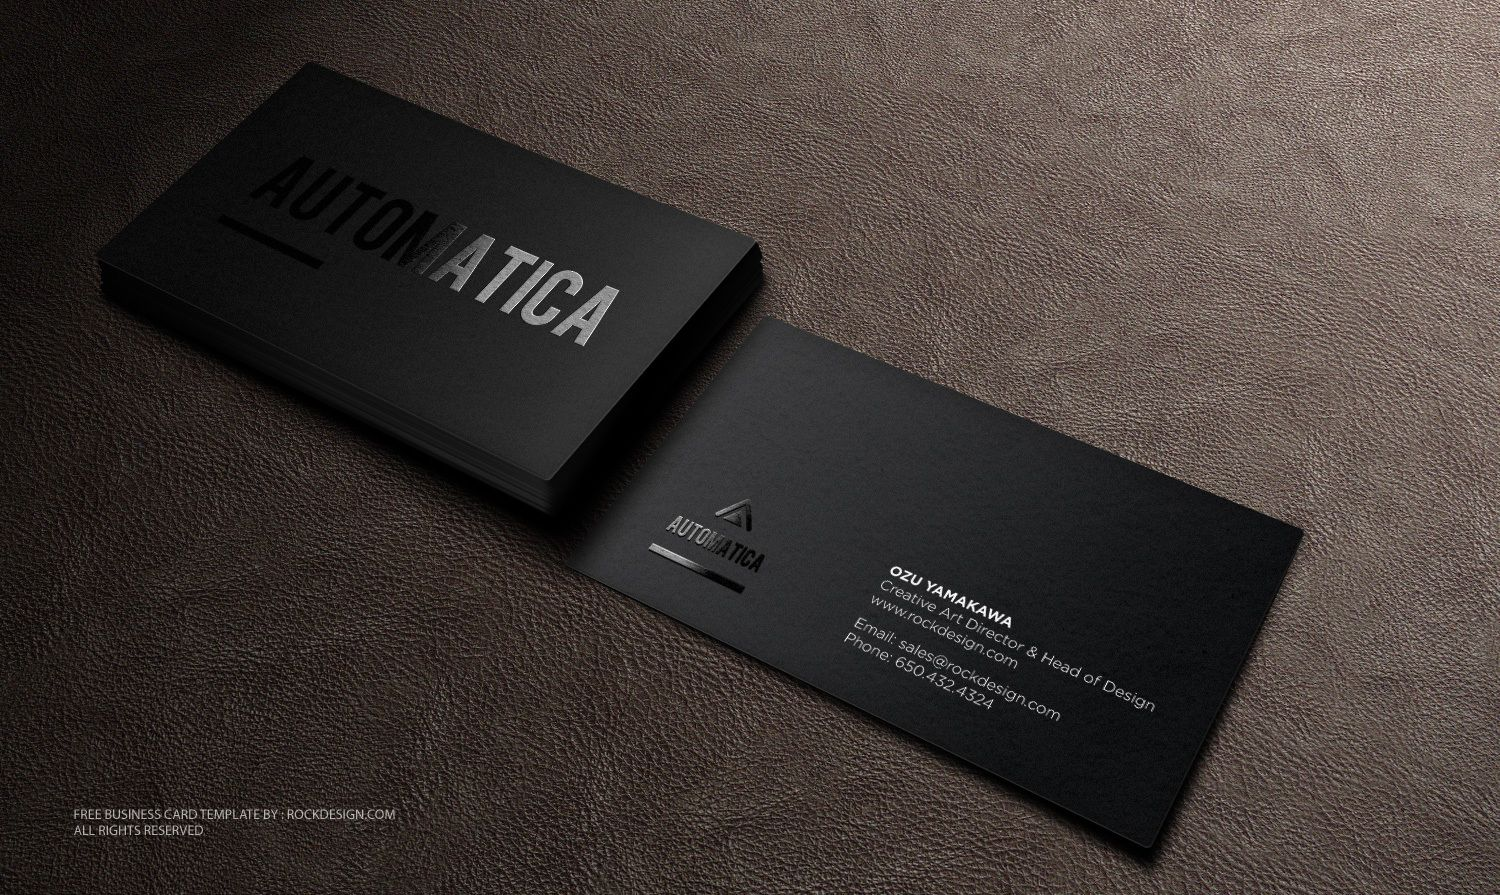 Black business card template download free design templates black business card template download free design templates fbccfo